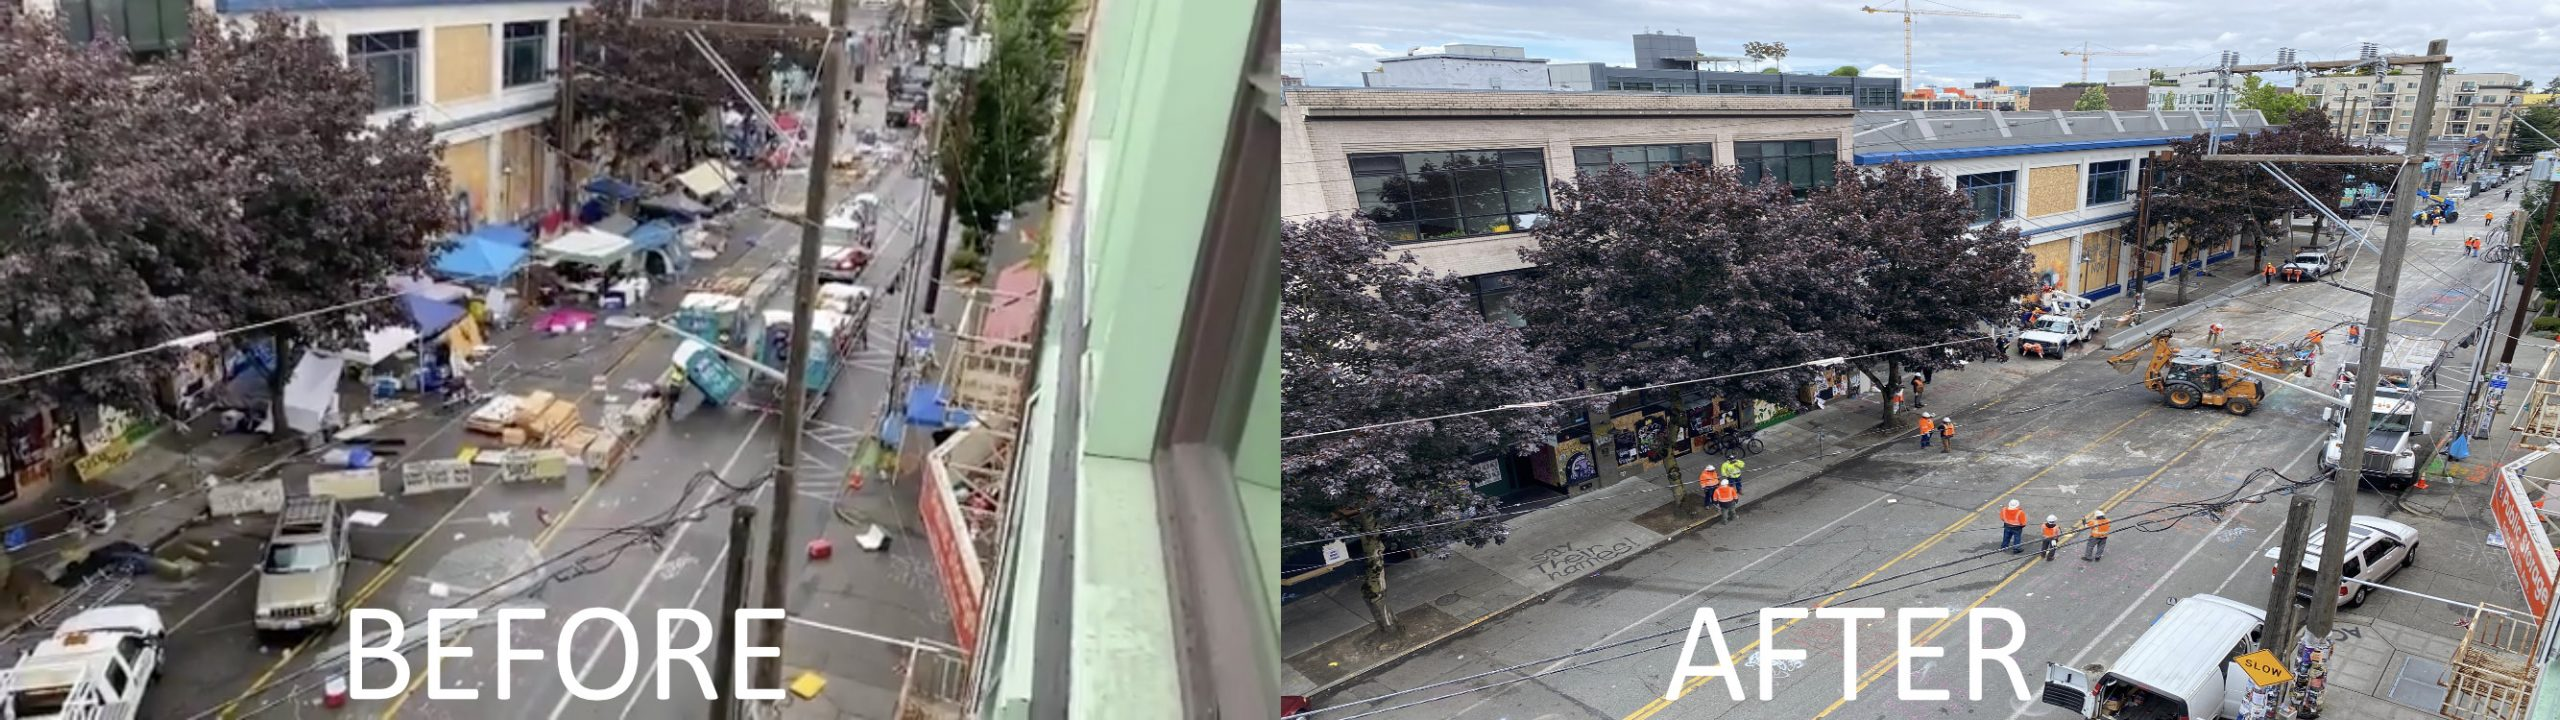 CHOP SEATTLE BEFORE AFTER